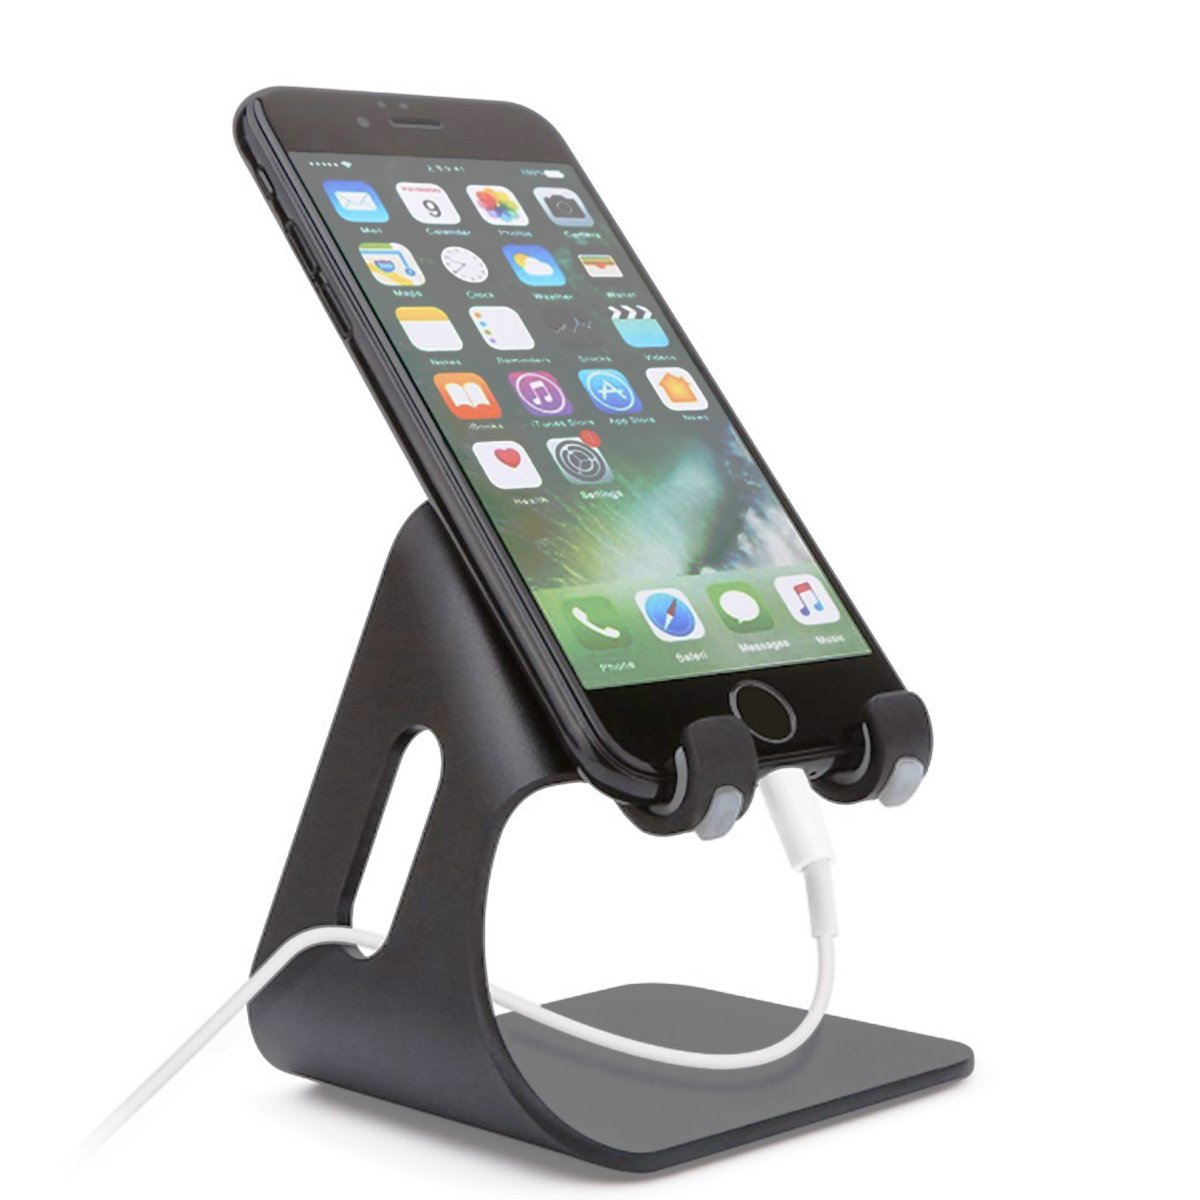 Sebsee Universal Cell Phone Stand Desk Mount Compatible iPhone Android Tablet Holder Accessories